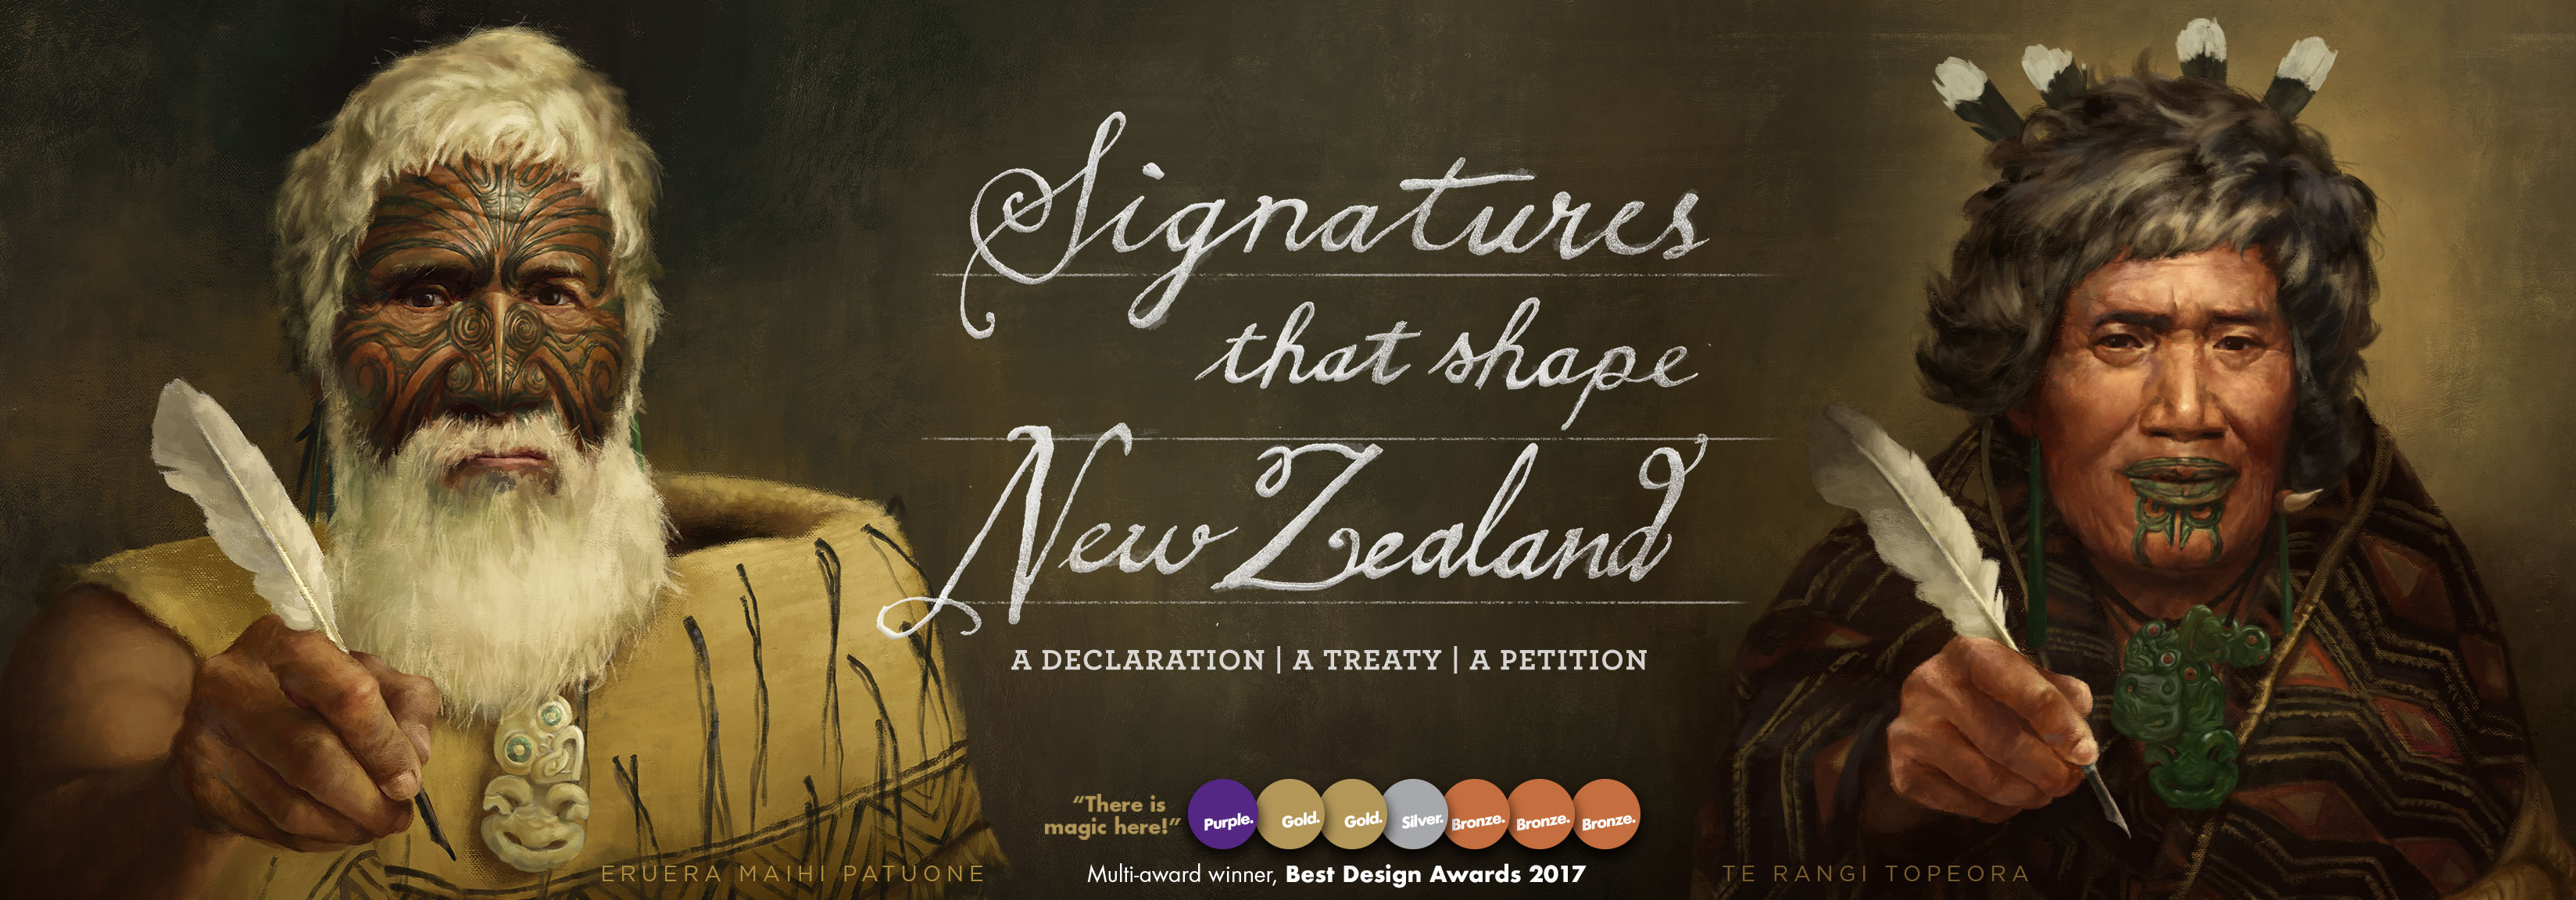 Signatures that shape New Zealand. Shows Patuone and Te Rangi Topeora, offering the pens they signed with.